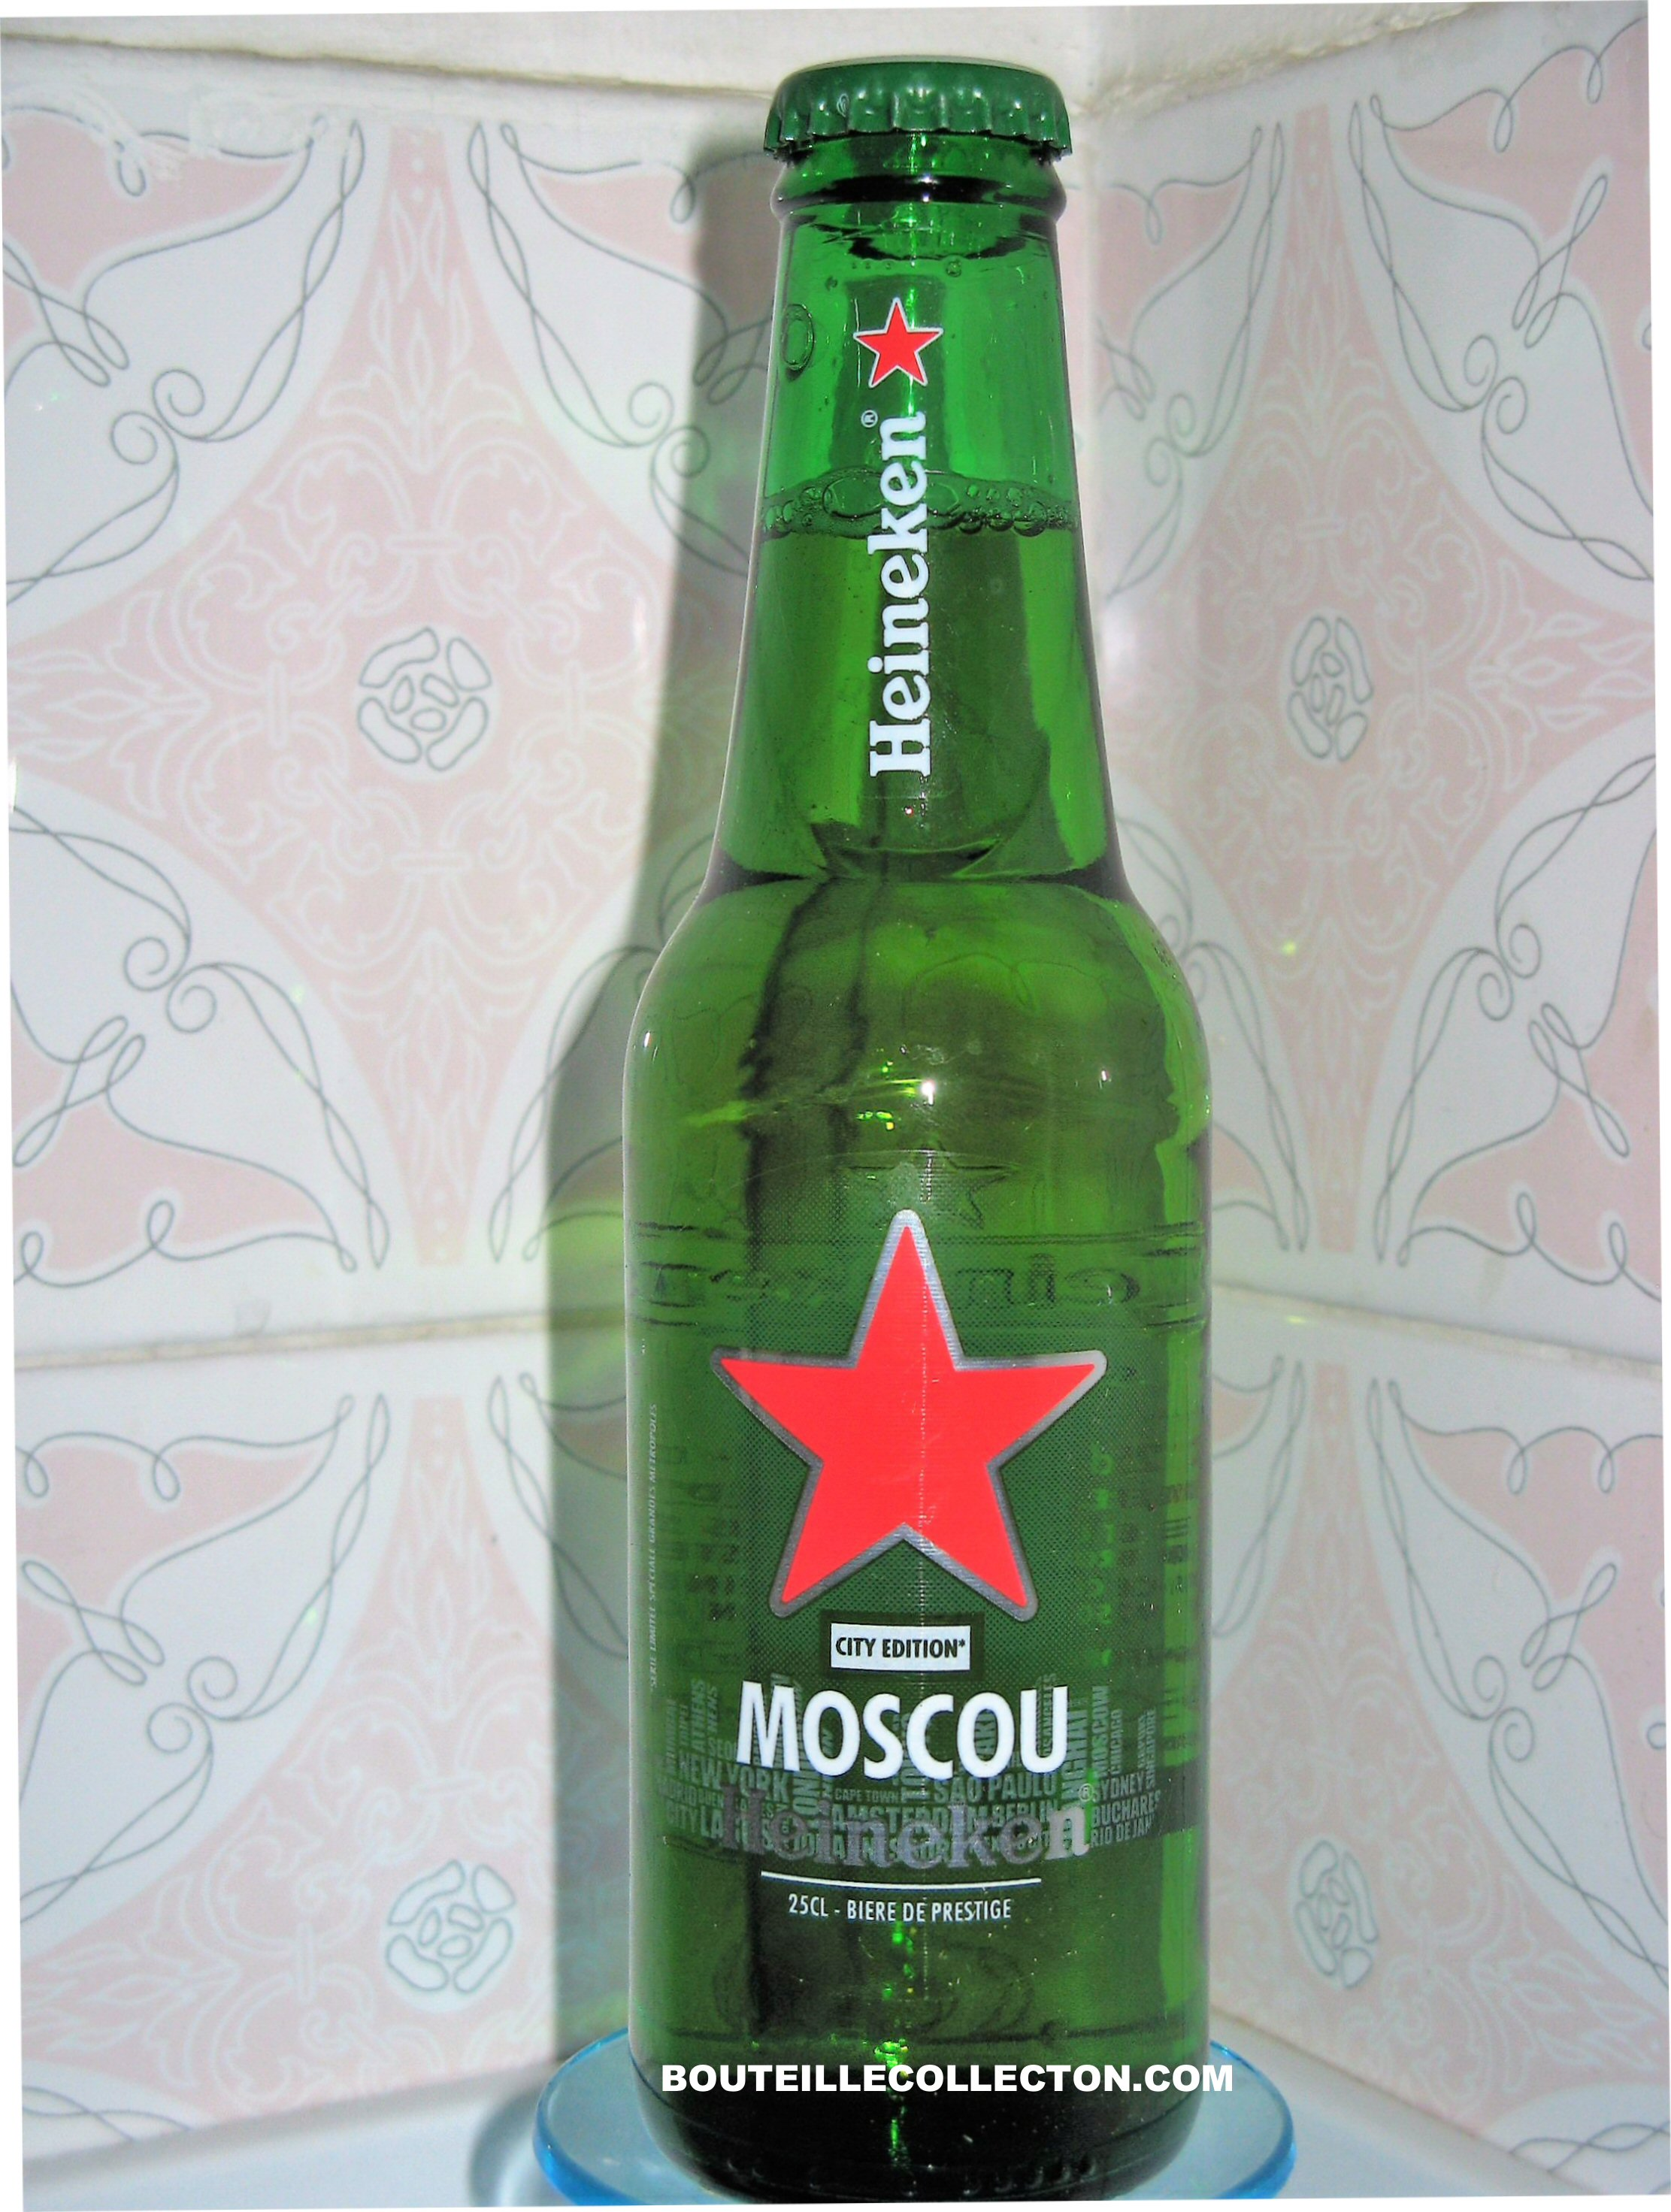 AC HEINEKEN CITY EDITION MOSCOU 2014 25CL B.jpg